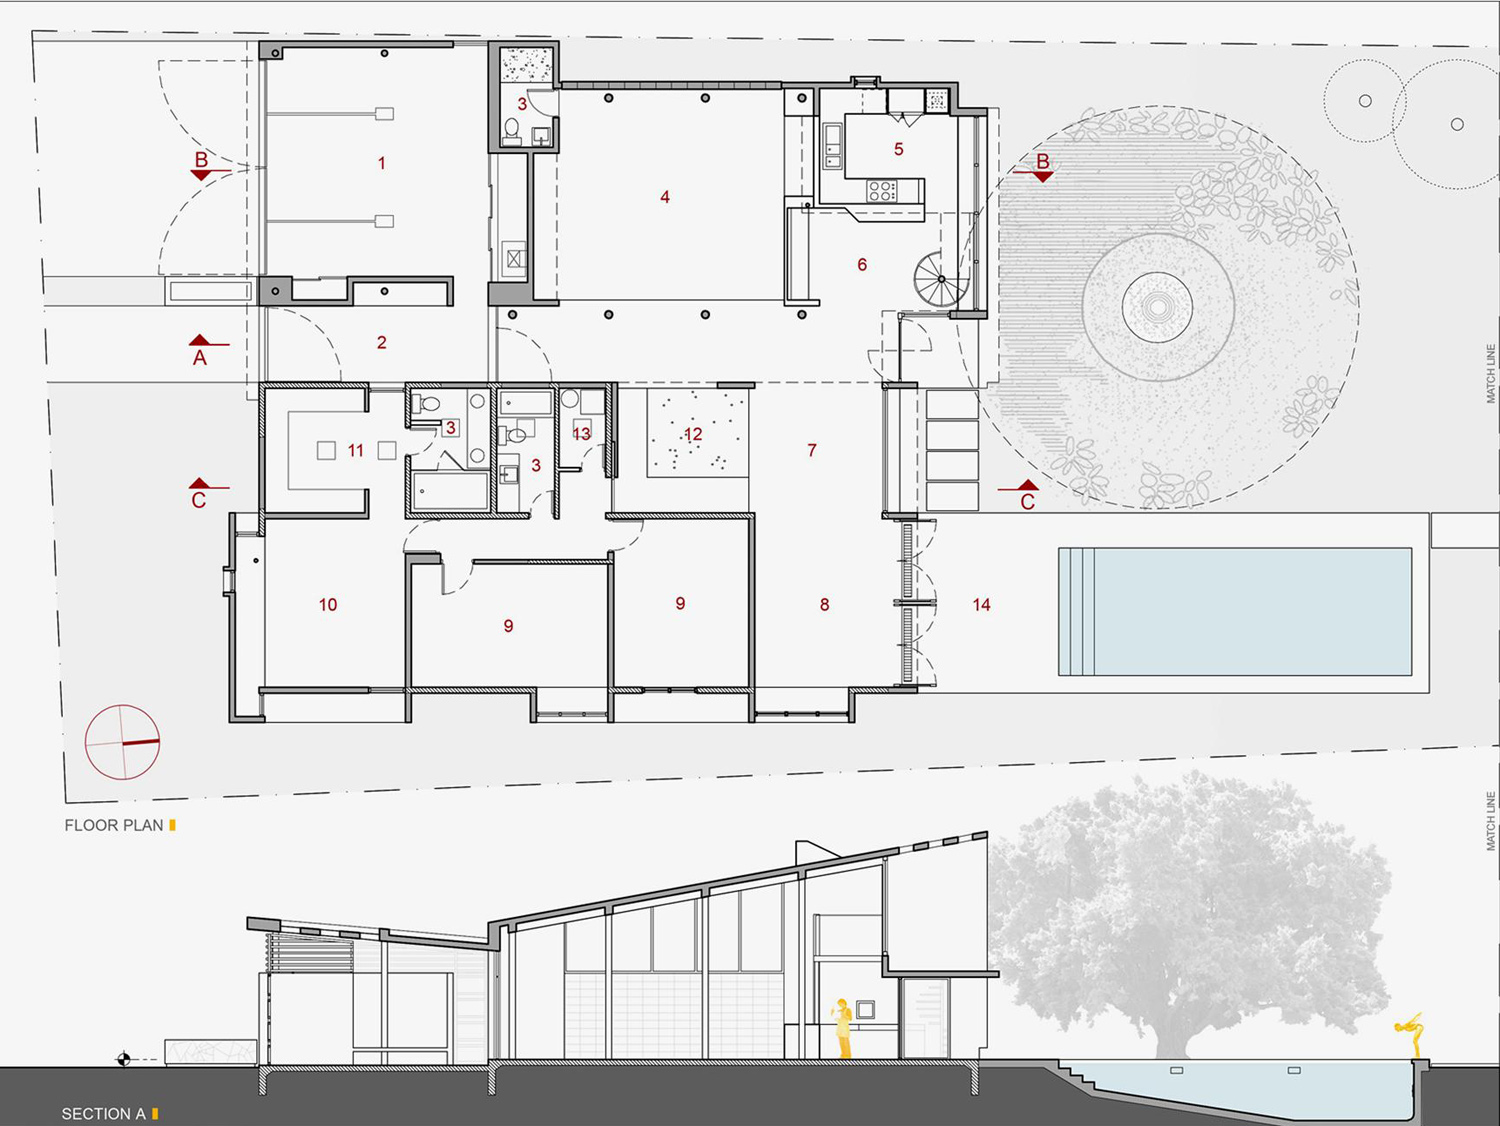 Architecture Photography: 98275009_floor-plan-section (11431)